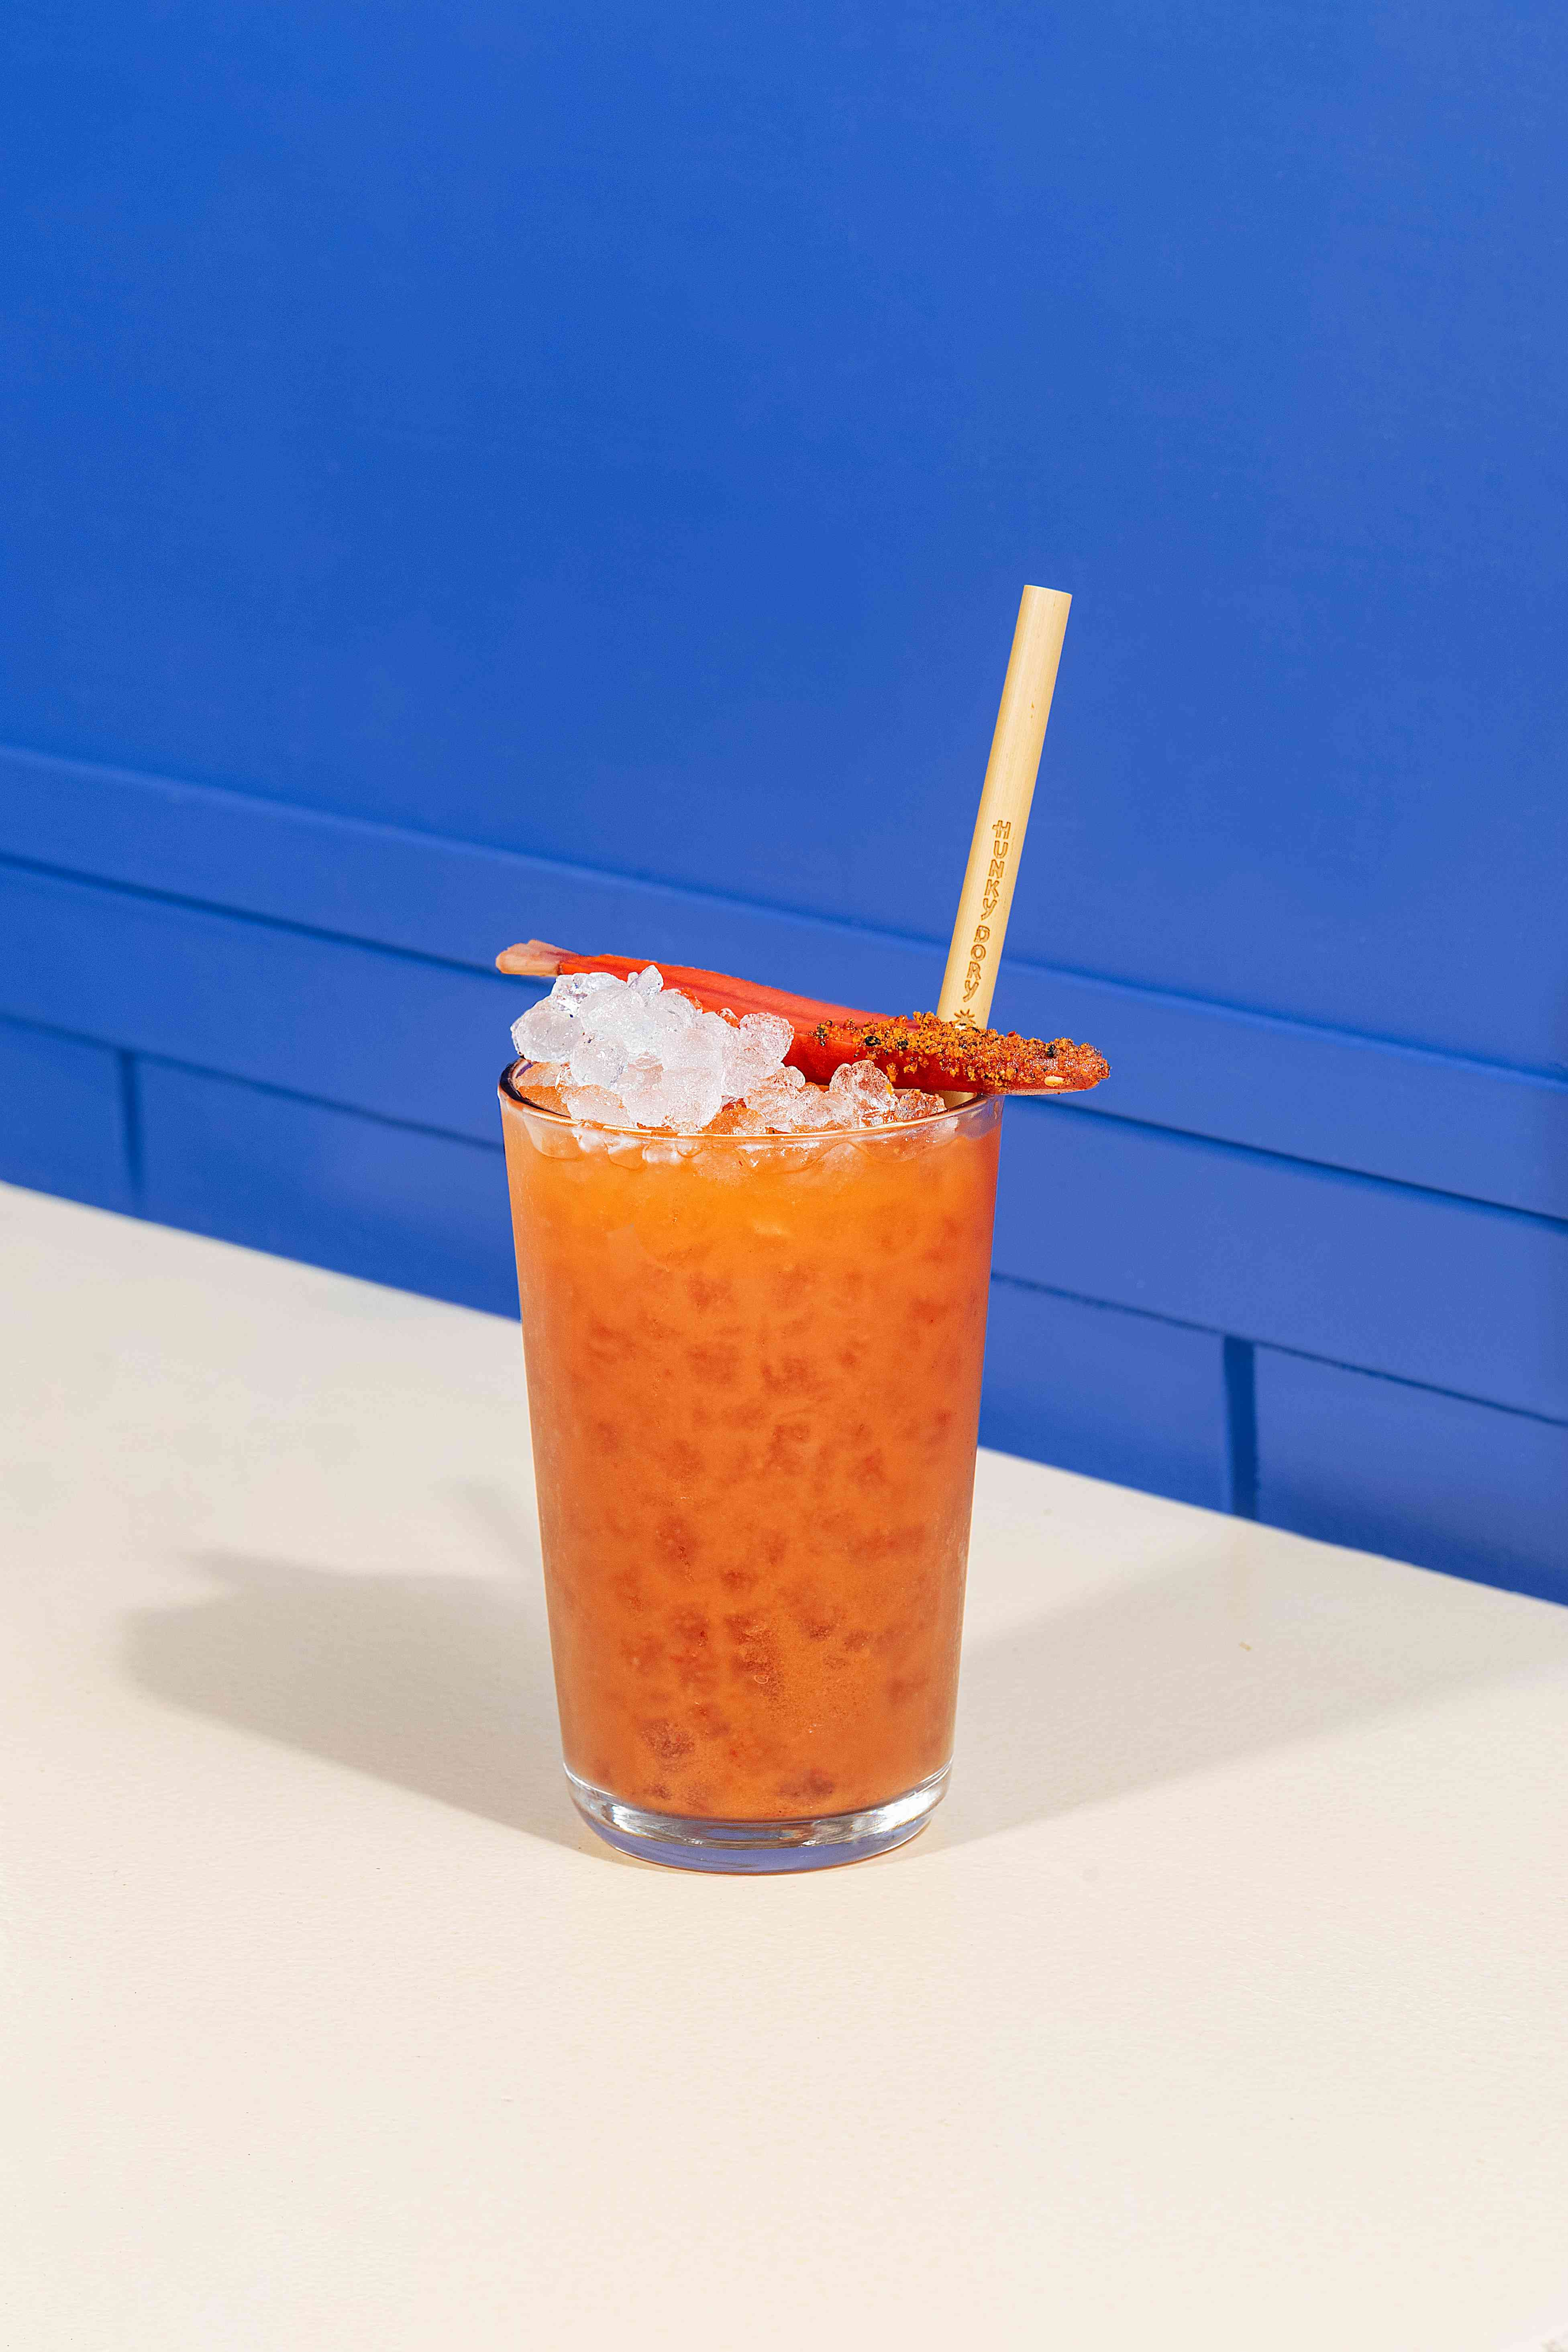 A Bloody Mary cocktail made with carrots and spice on table